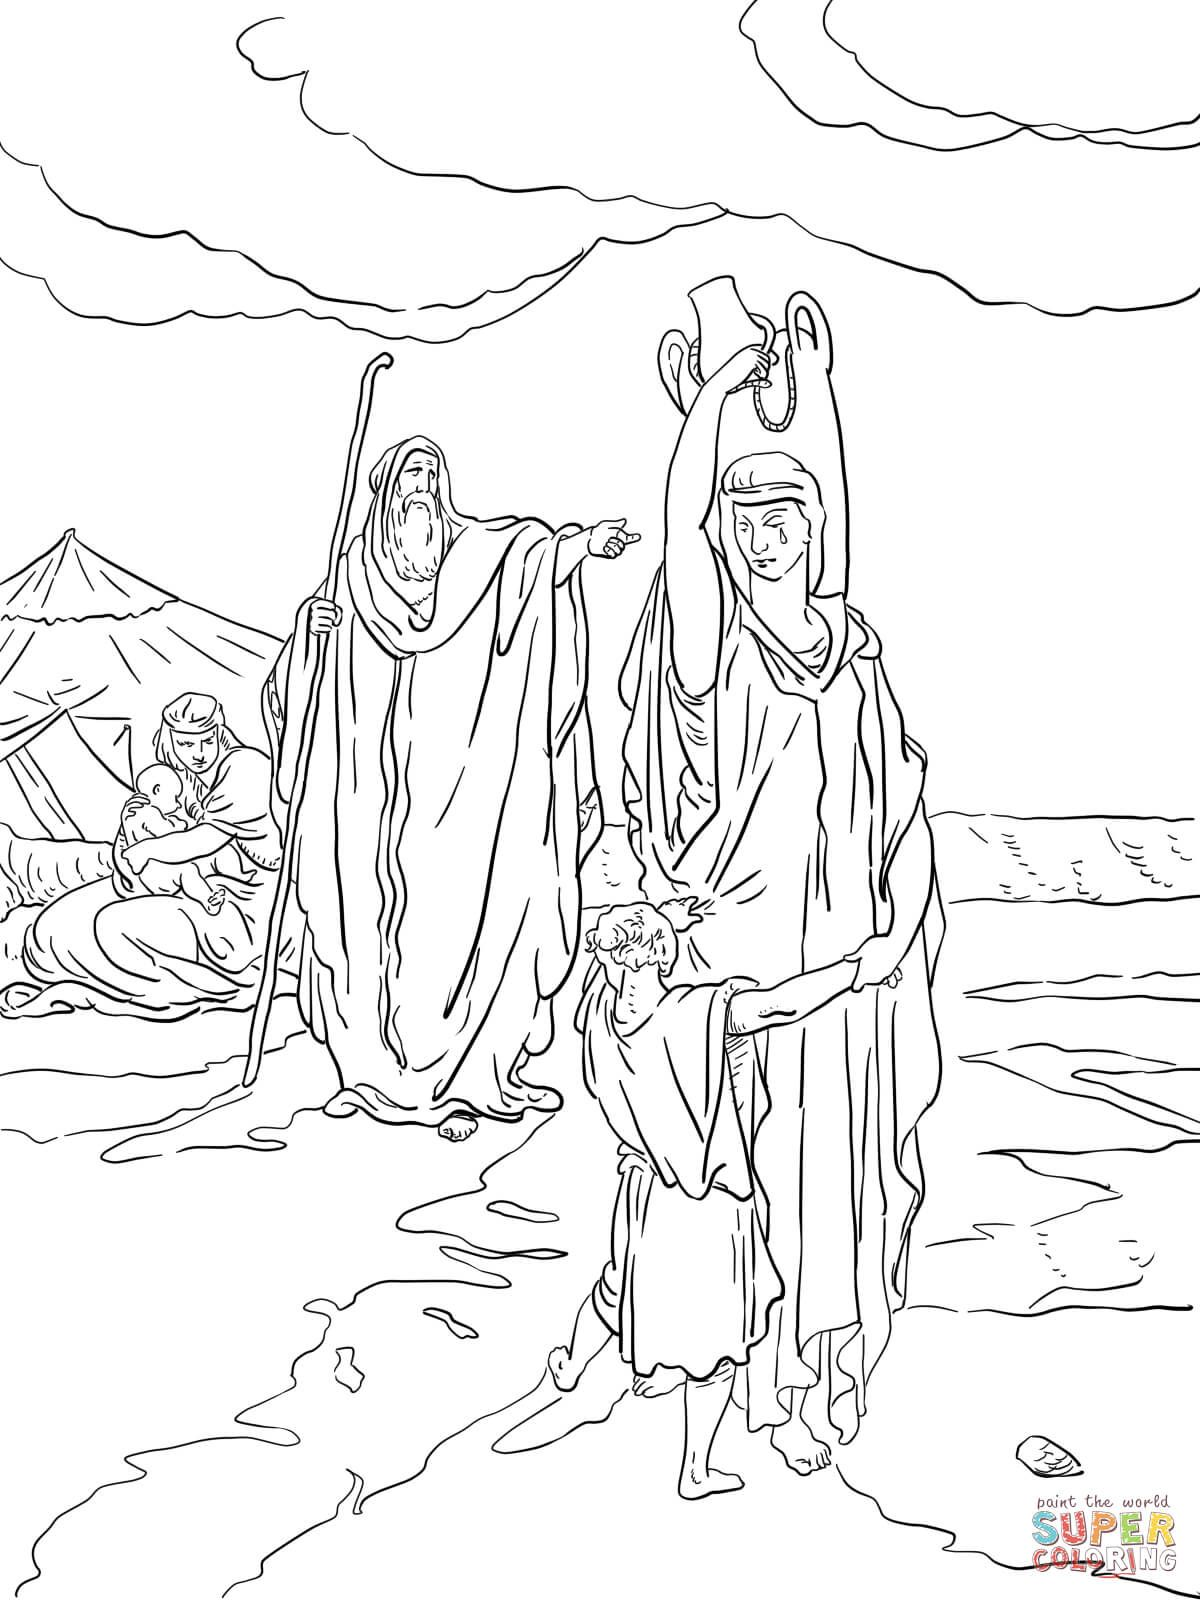 the expulsion of hagar and ishmael coloring page from abraham